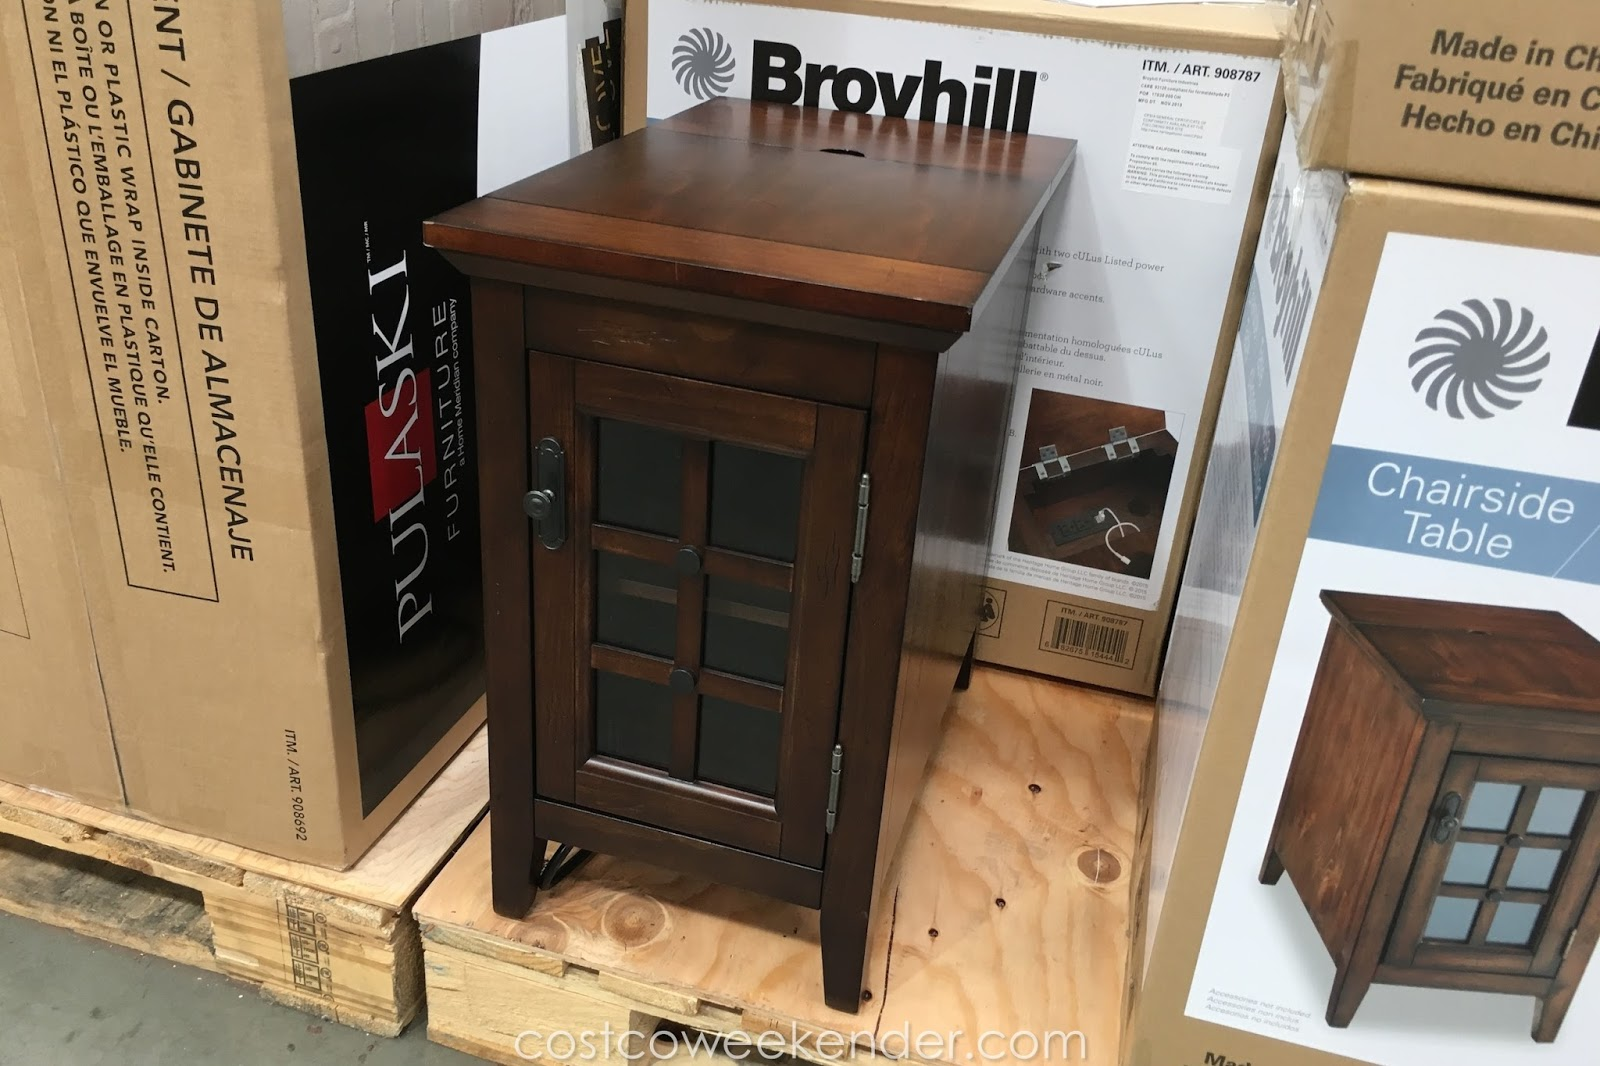 broyhill chairside table weekender whalen end great nightstand tree coat rack oak lamp tables for living room rustic coffee designs wine kmart unfinished childrens furniture old